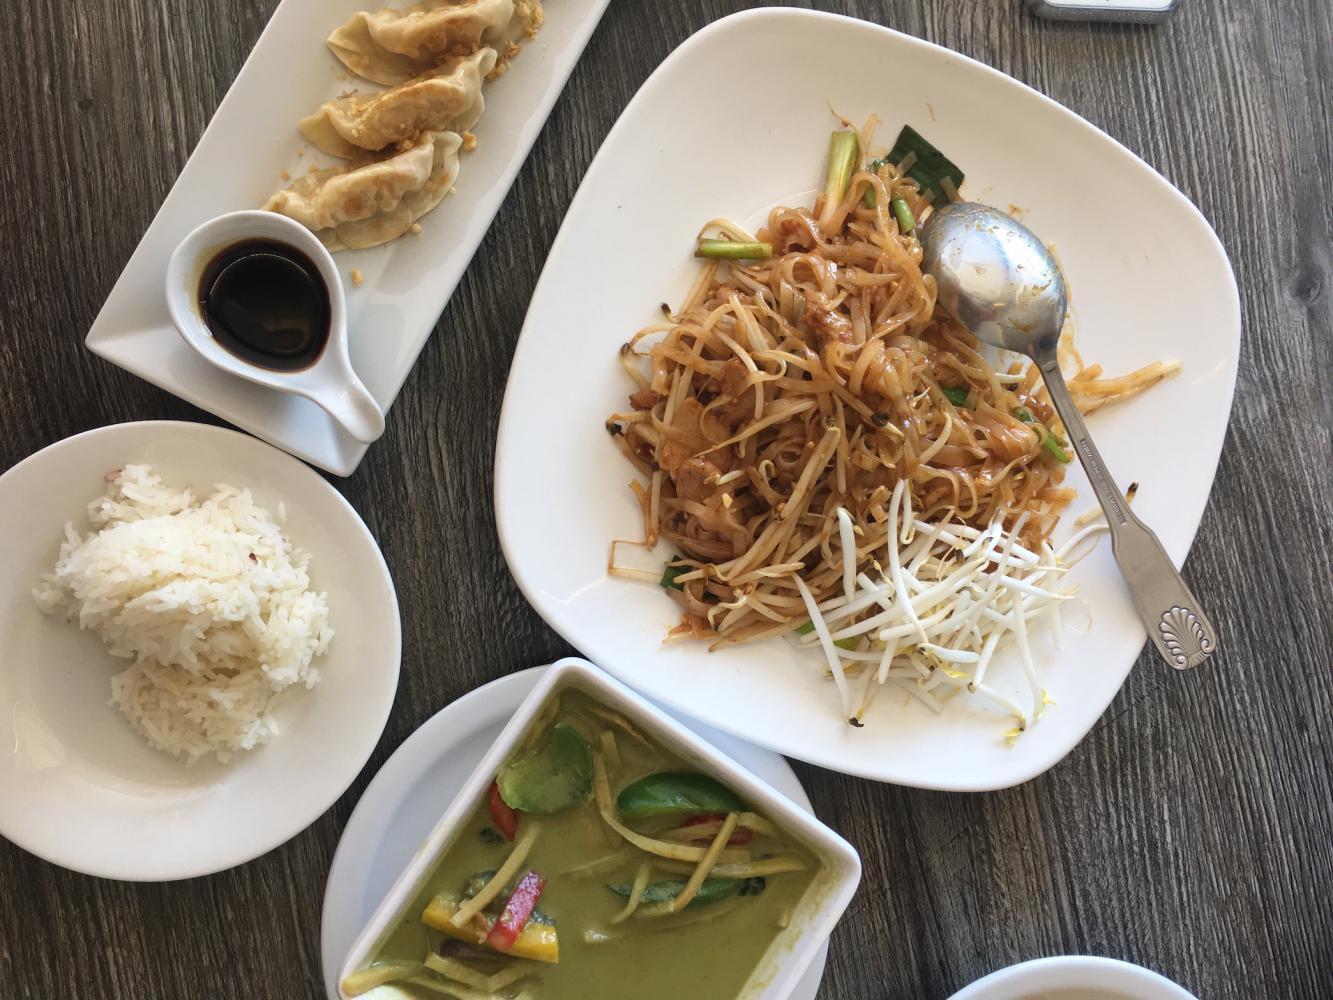 Review: Vegan Glory offers unique Thai dishes